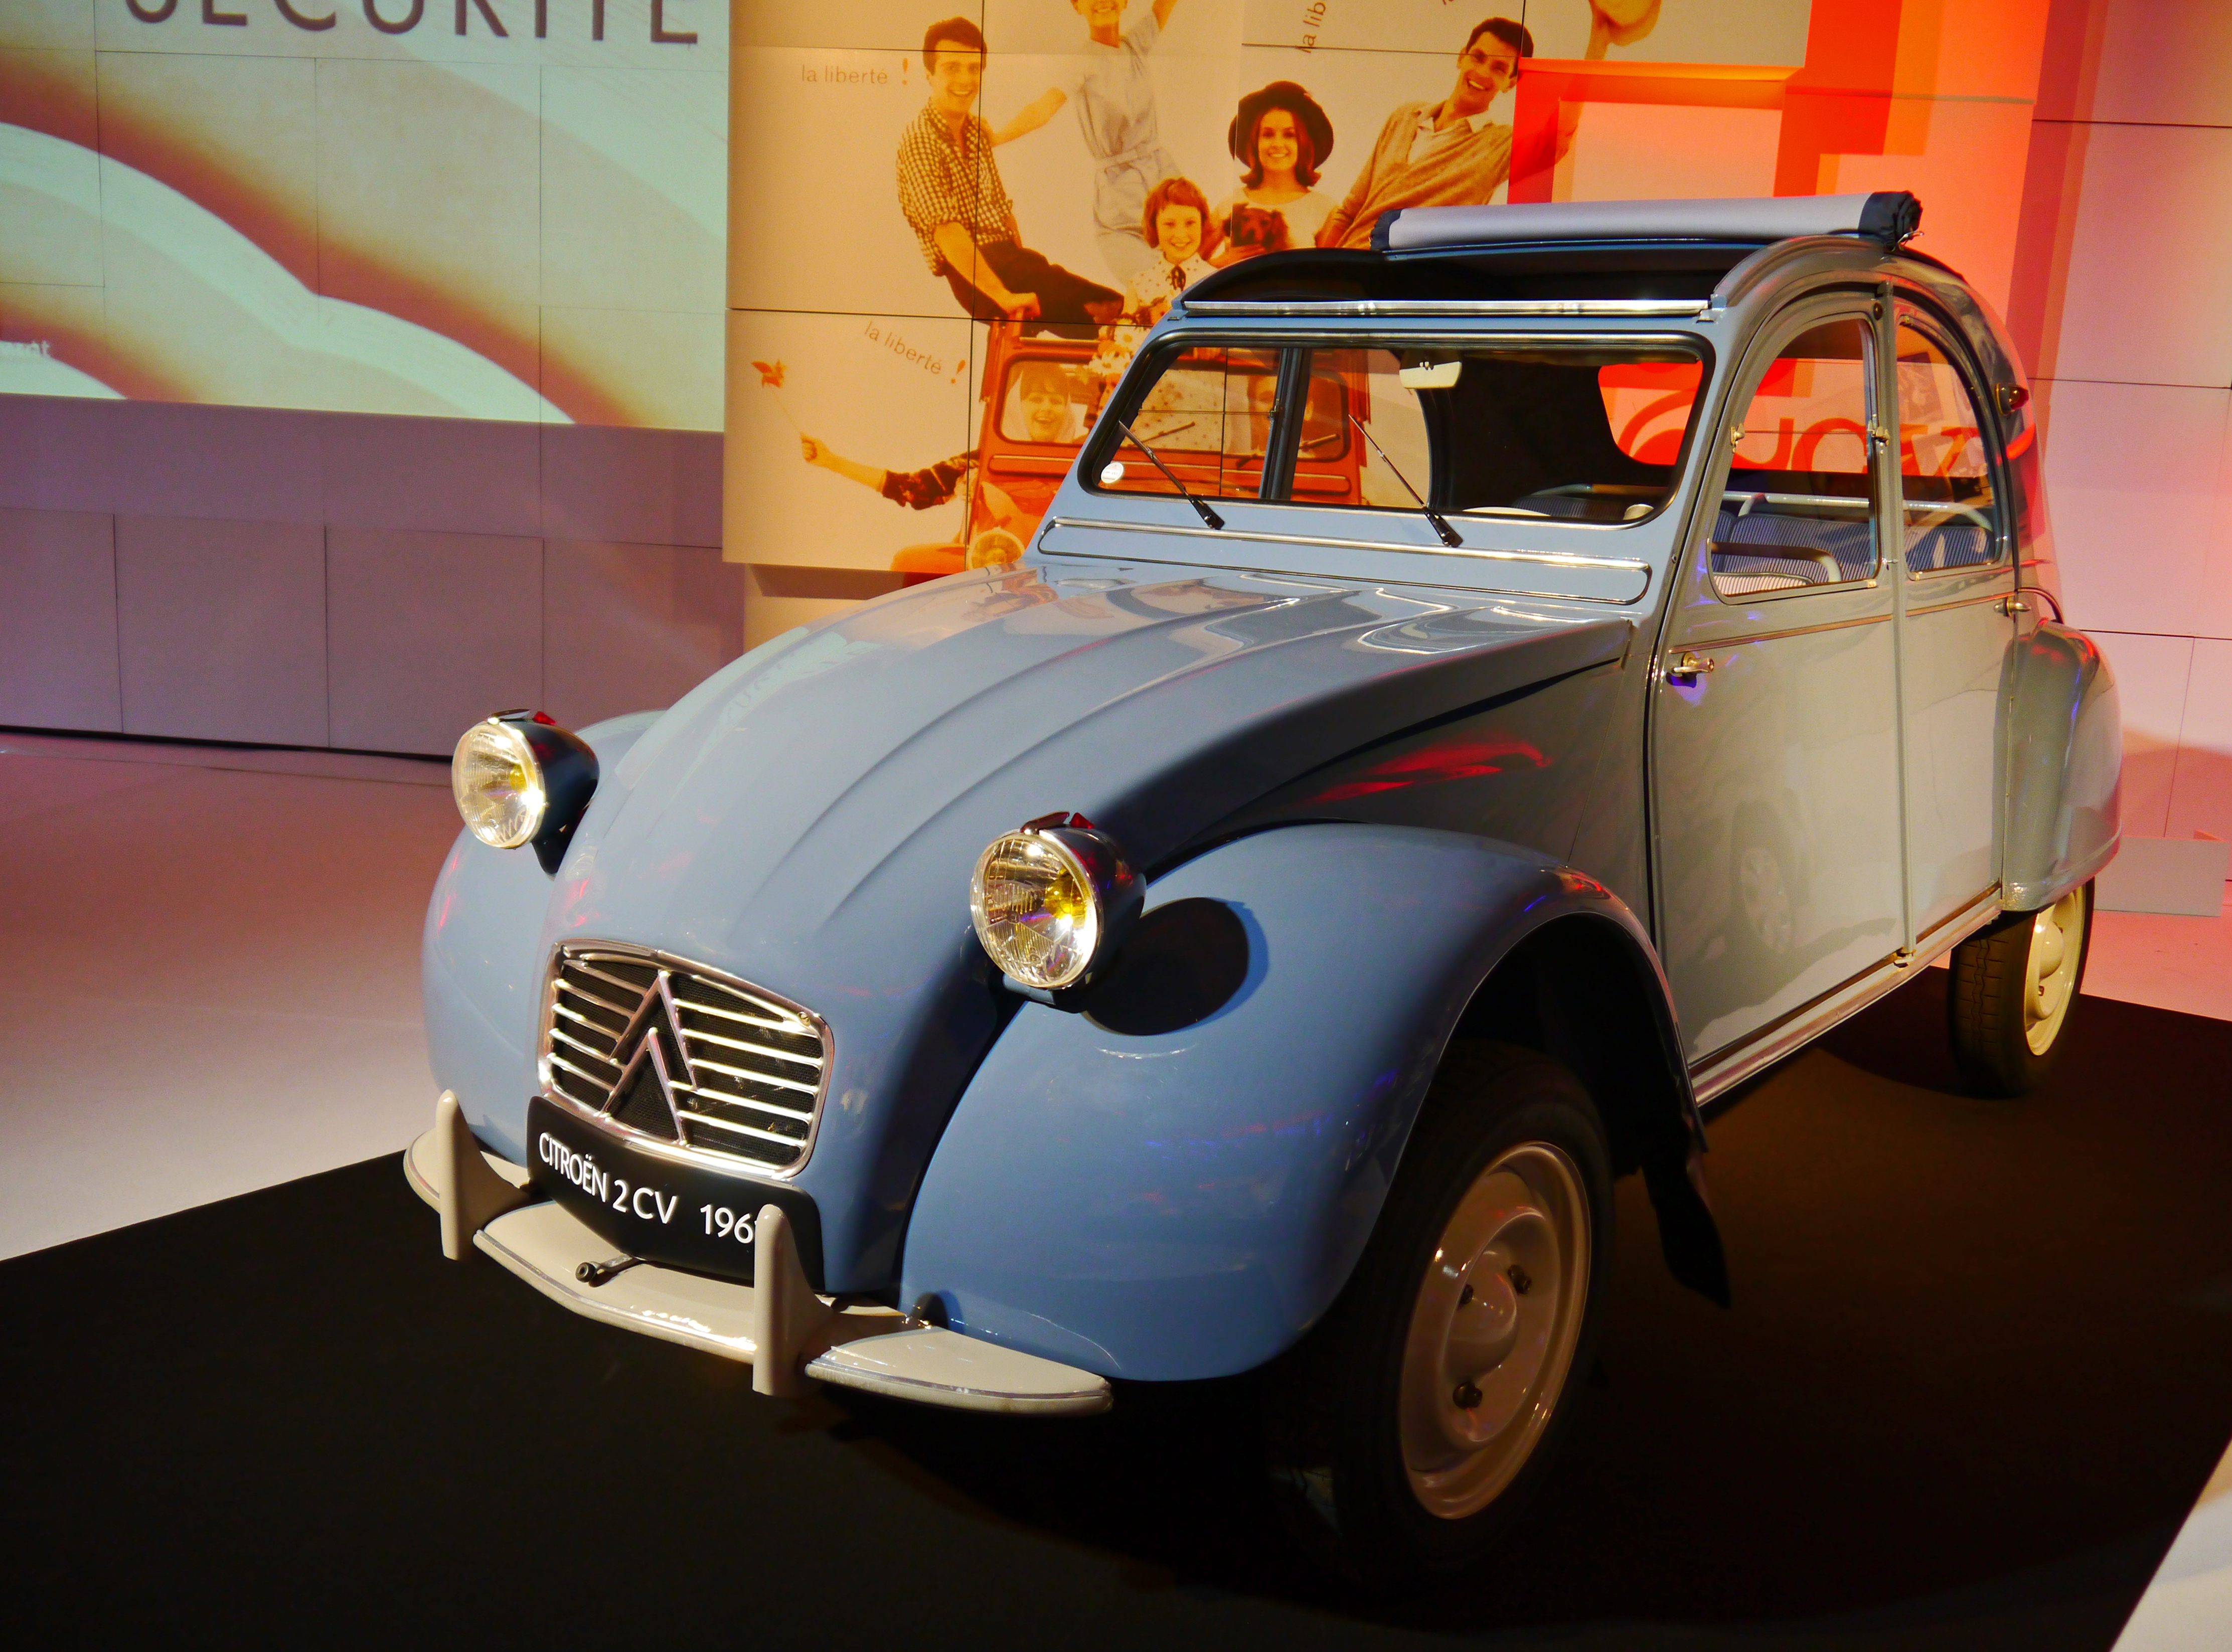 file mondial de l 39 automobile 2012 paris france 8665391217 jpg wikipedia. Black Bedroom Furniture Sets. Home Design Ideas